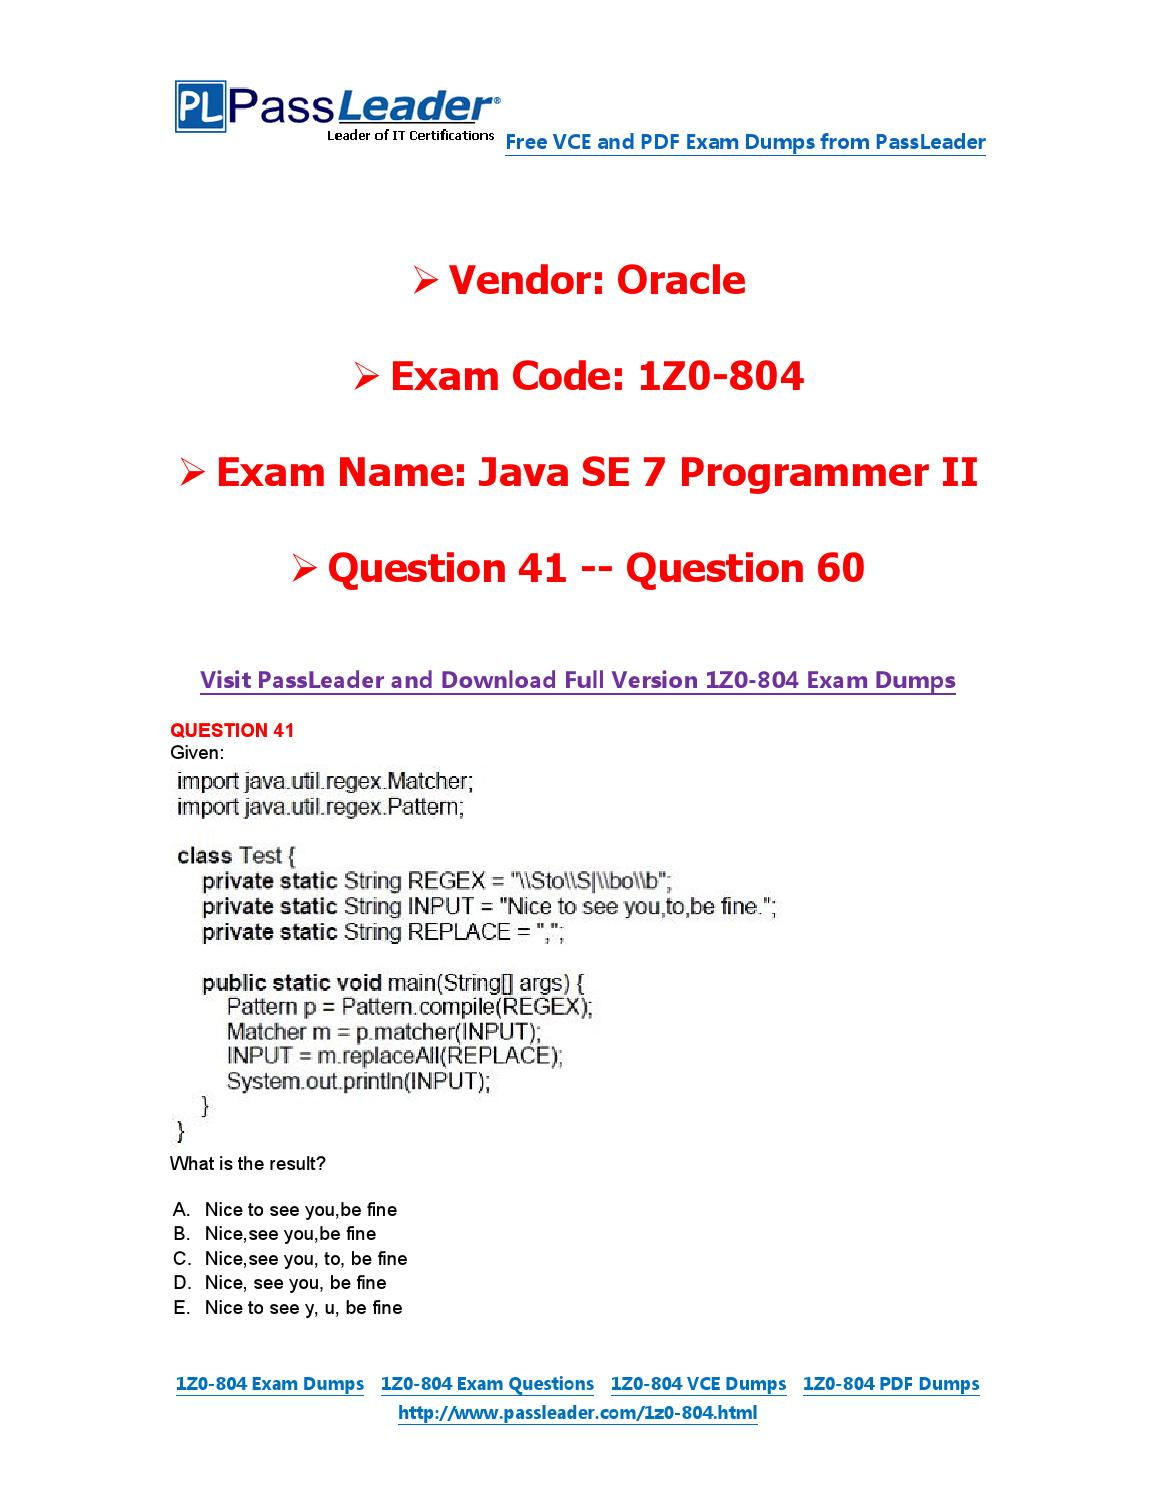 2016 new 1z0 804 exam dumps for free vce and pdf 41 60 by exam 2016 new 1z0 804 exam dumps for free vce and pdf 41 60 by exam dumps issuu baditri Images